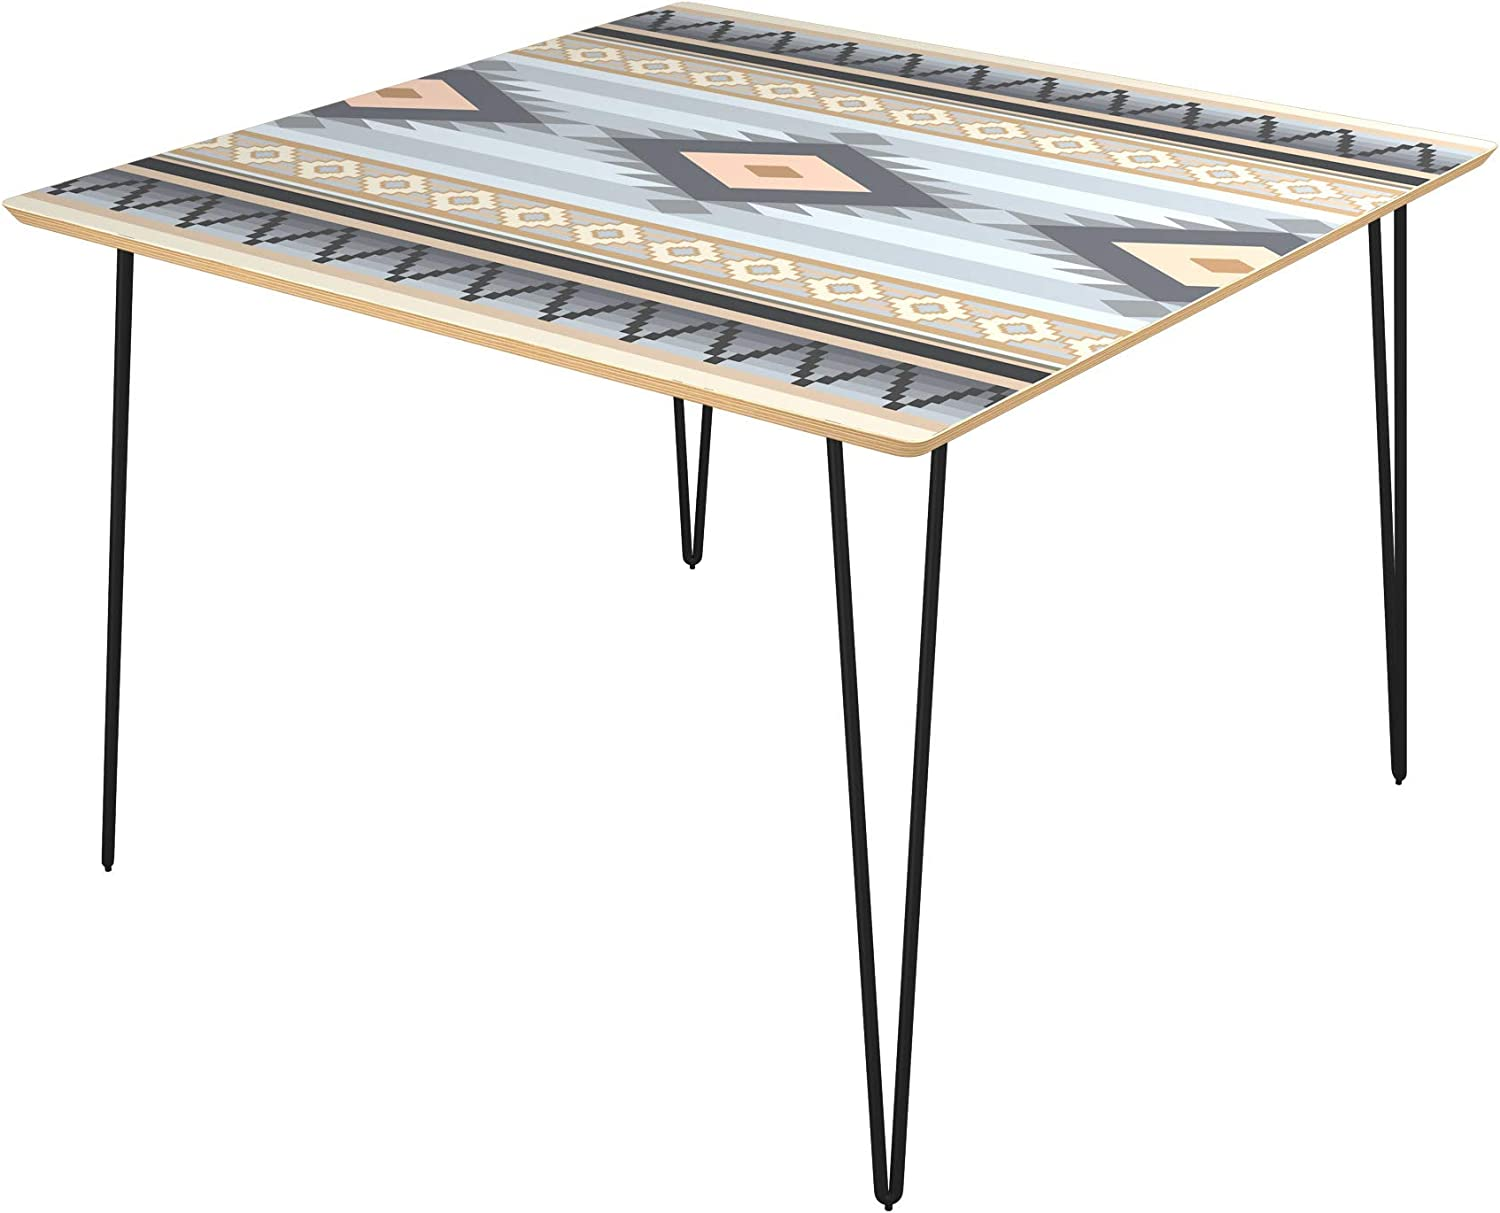 Poppy Square Max 69% OFF All stores are sold Dining Table - Surface Desert Hairpin Winter Carbon